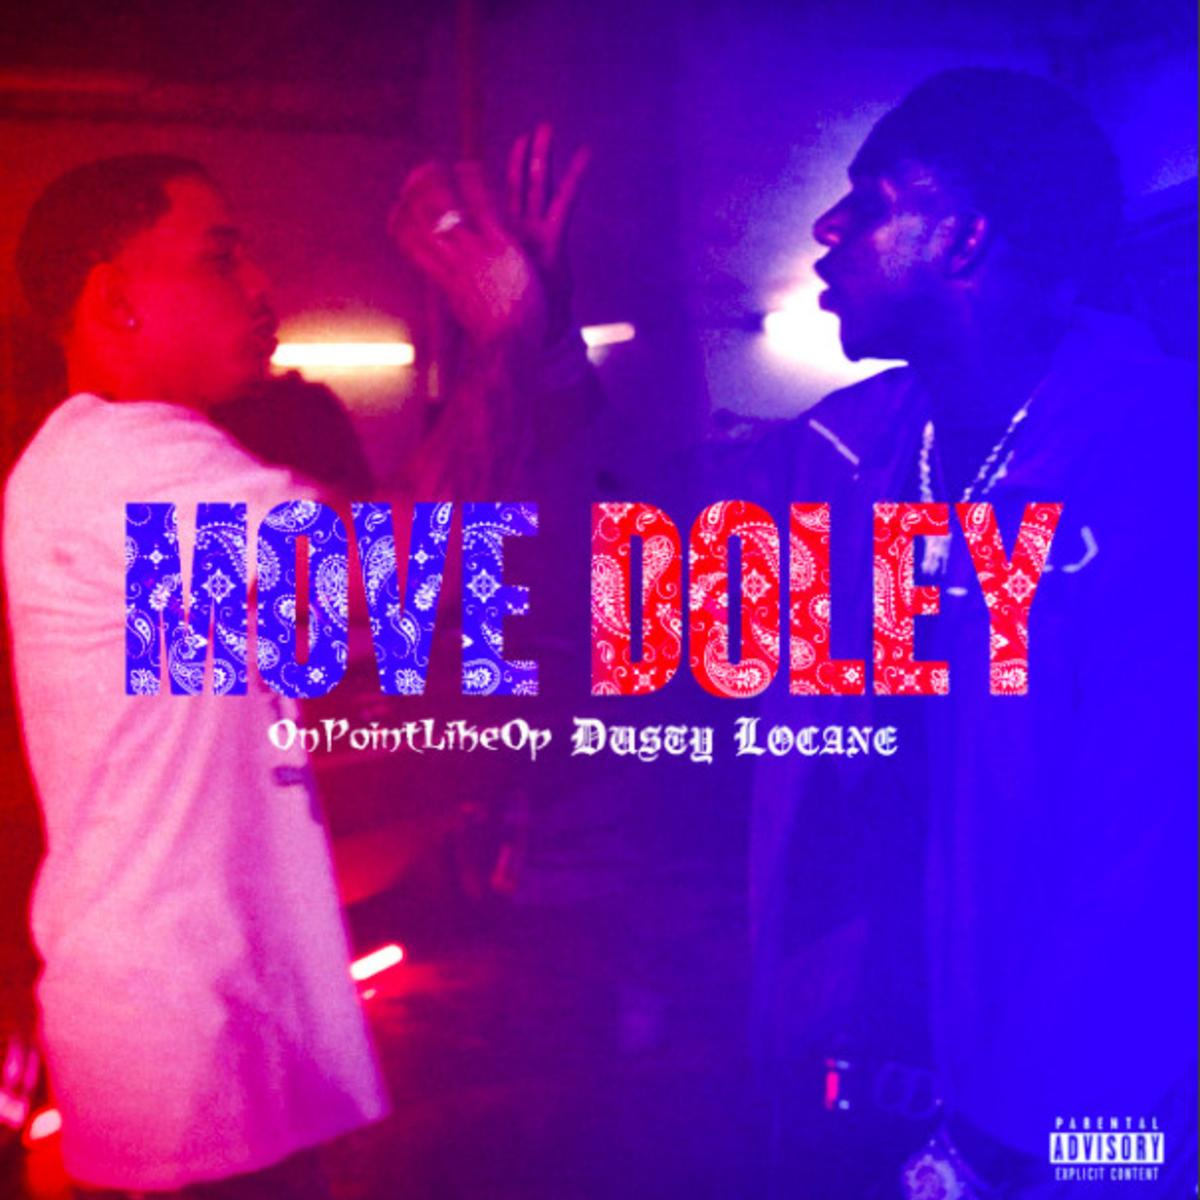 DOWNLOAD MP3: Dusty Locane Ft. Onpointlikeop – Move Doley